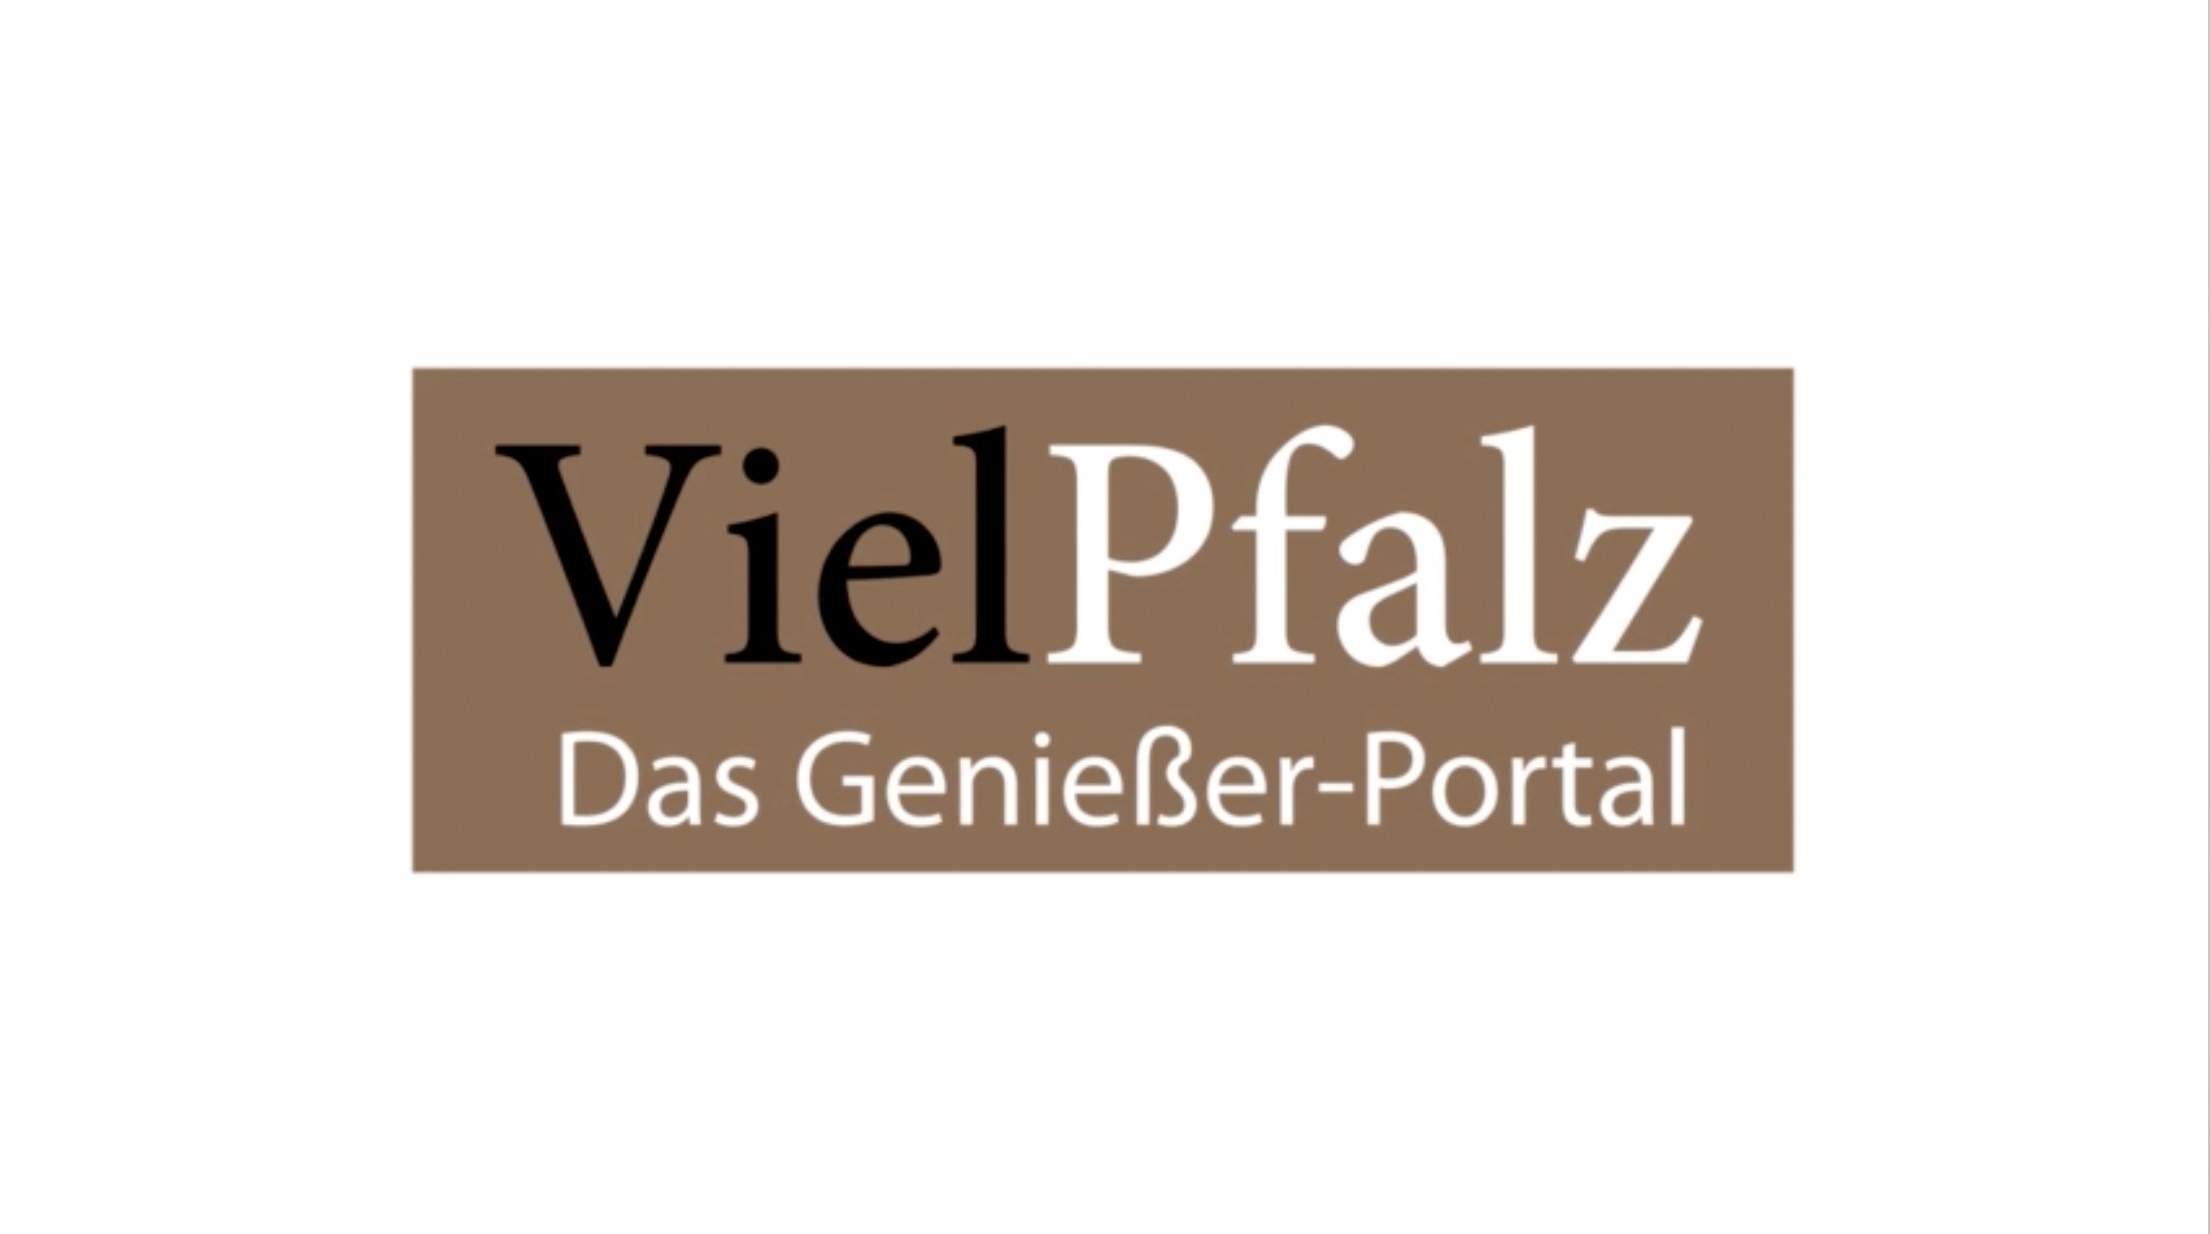 VielPfalz – the connoisseur portal from the Palatinate